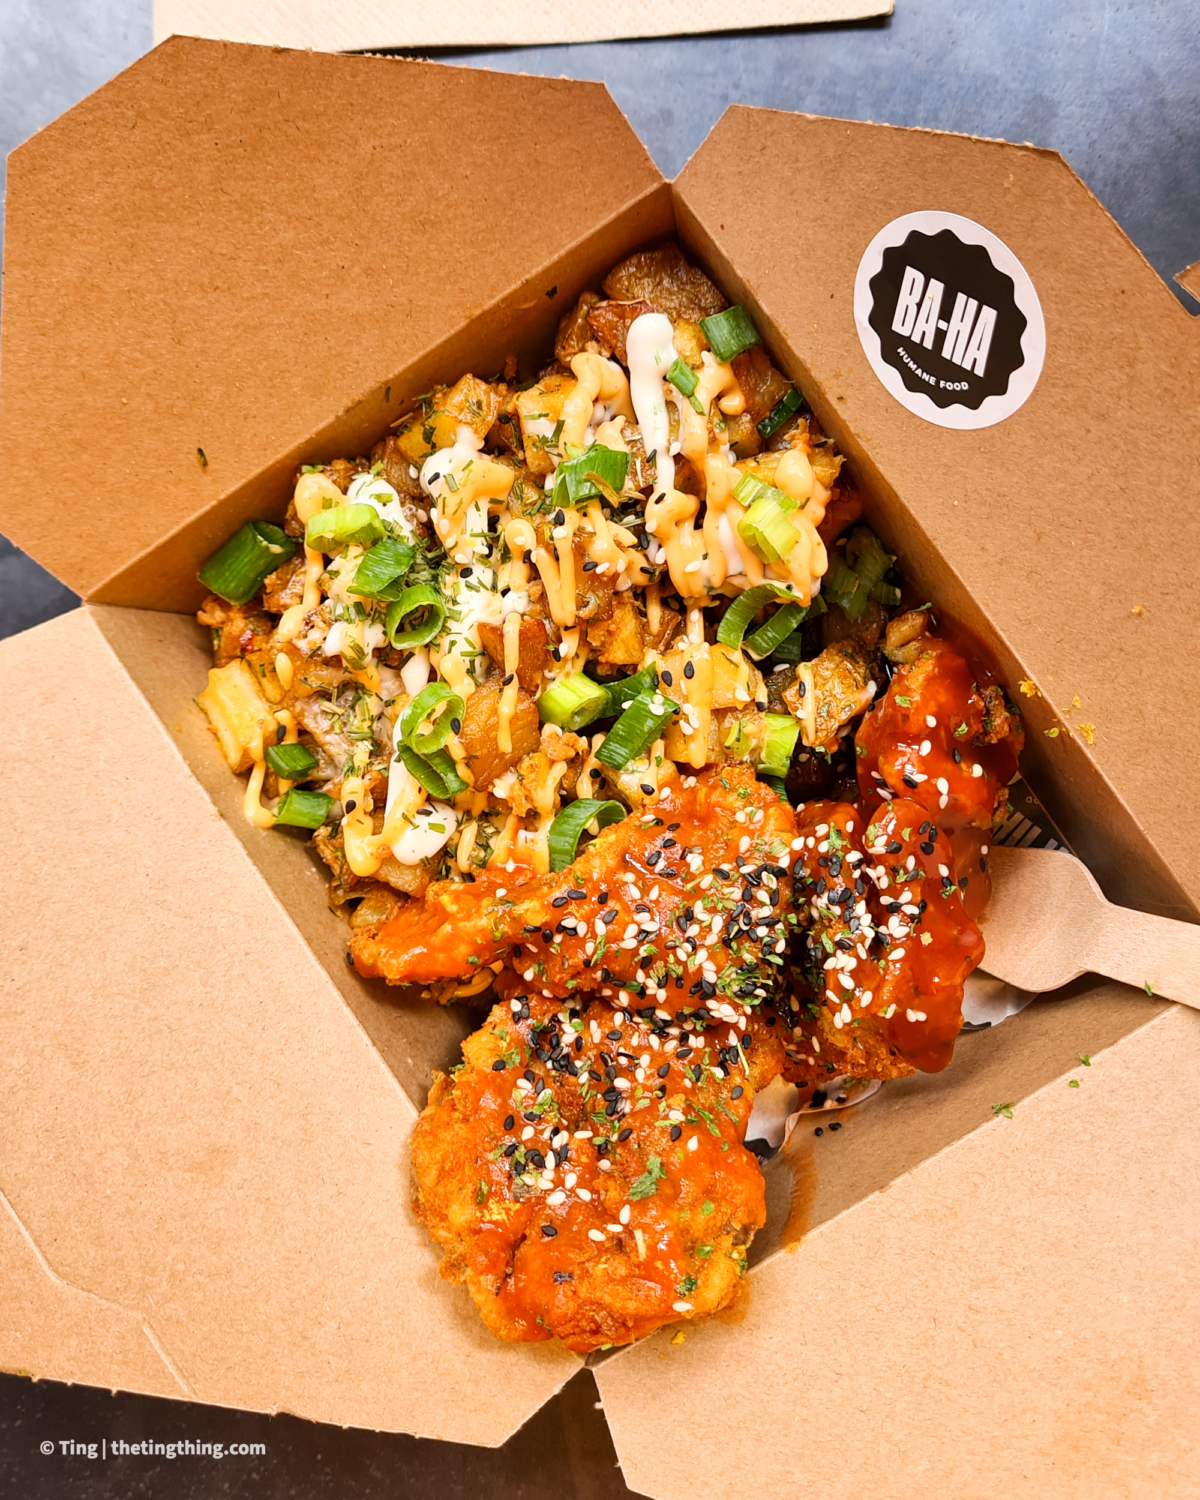 A cardboard lunchbox from Ba Ha Vegan at The Stag Digbeth. The box contains crispy potato cubes covered in sriracha mayo, spring onions and sesame seeds. Next to the potatoes are some 'chicken wings' made from deep fried crumbed king oyster mushrooms. The mushroom wings are covered in spicy sauce and a sprinkle of black and white sesame seeds.